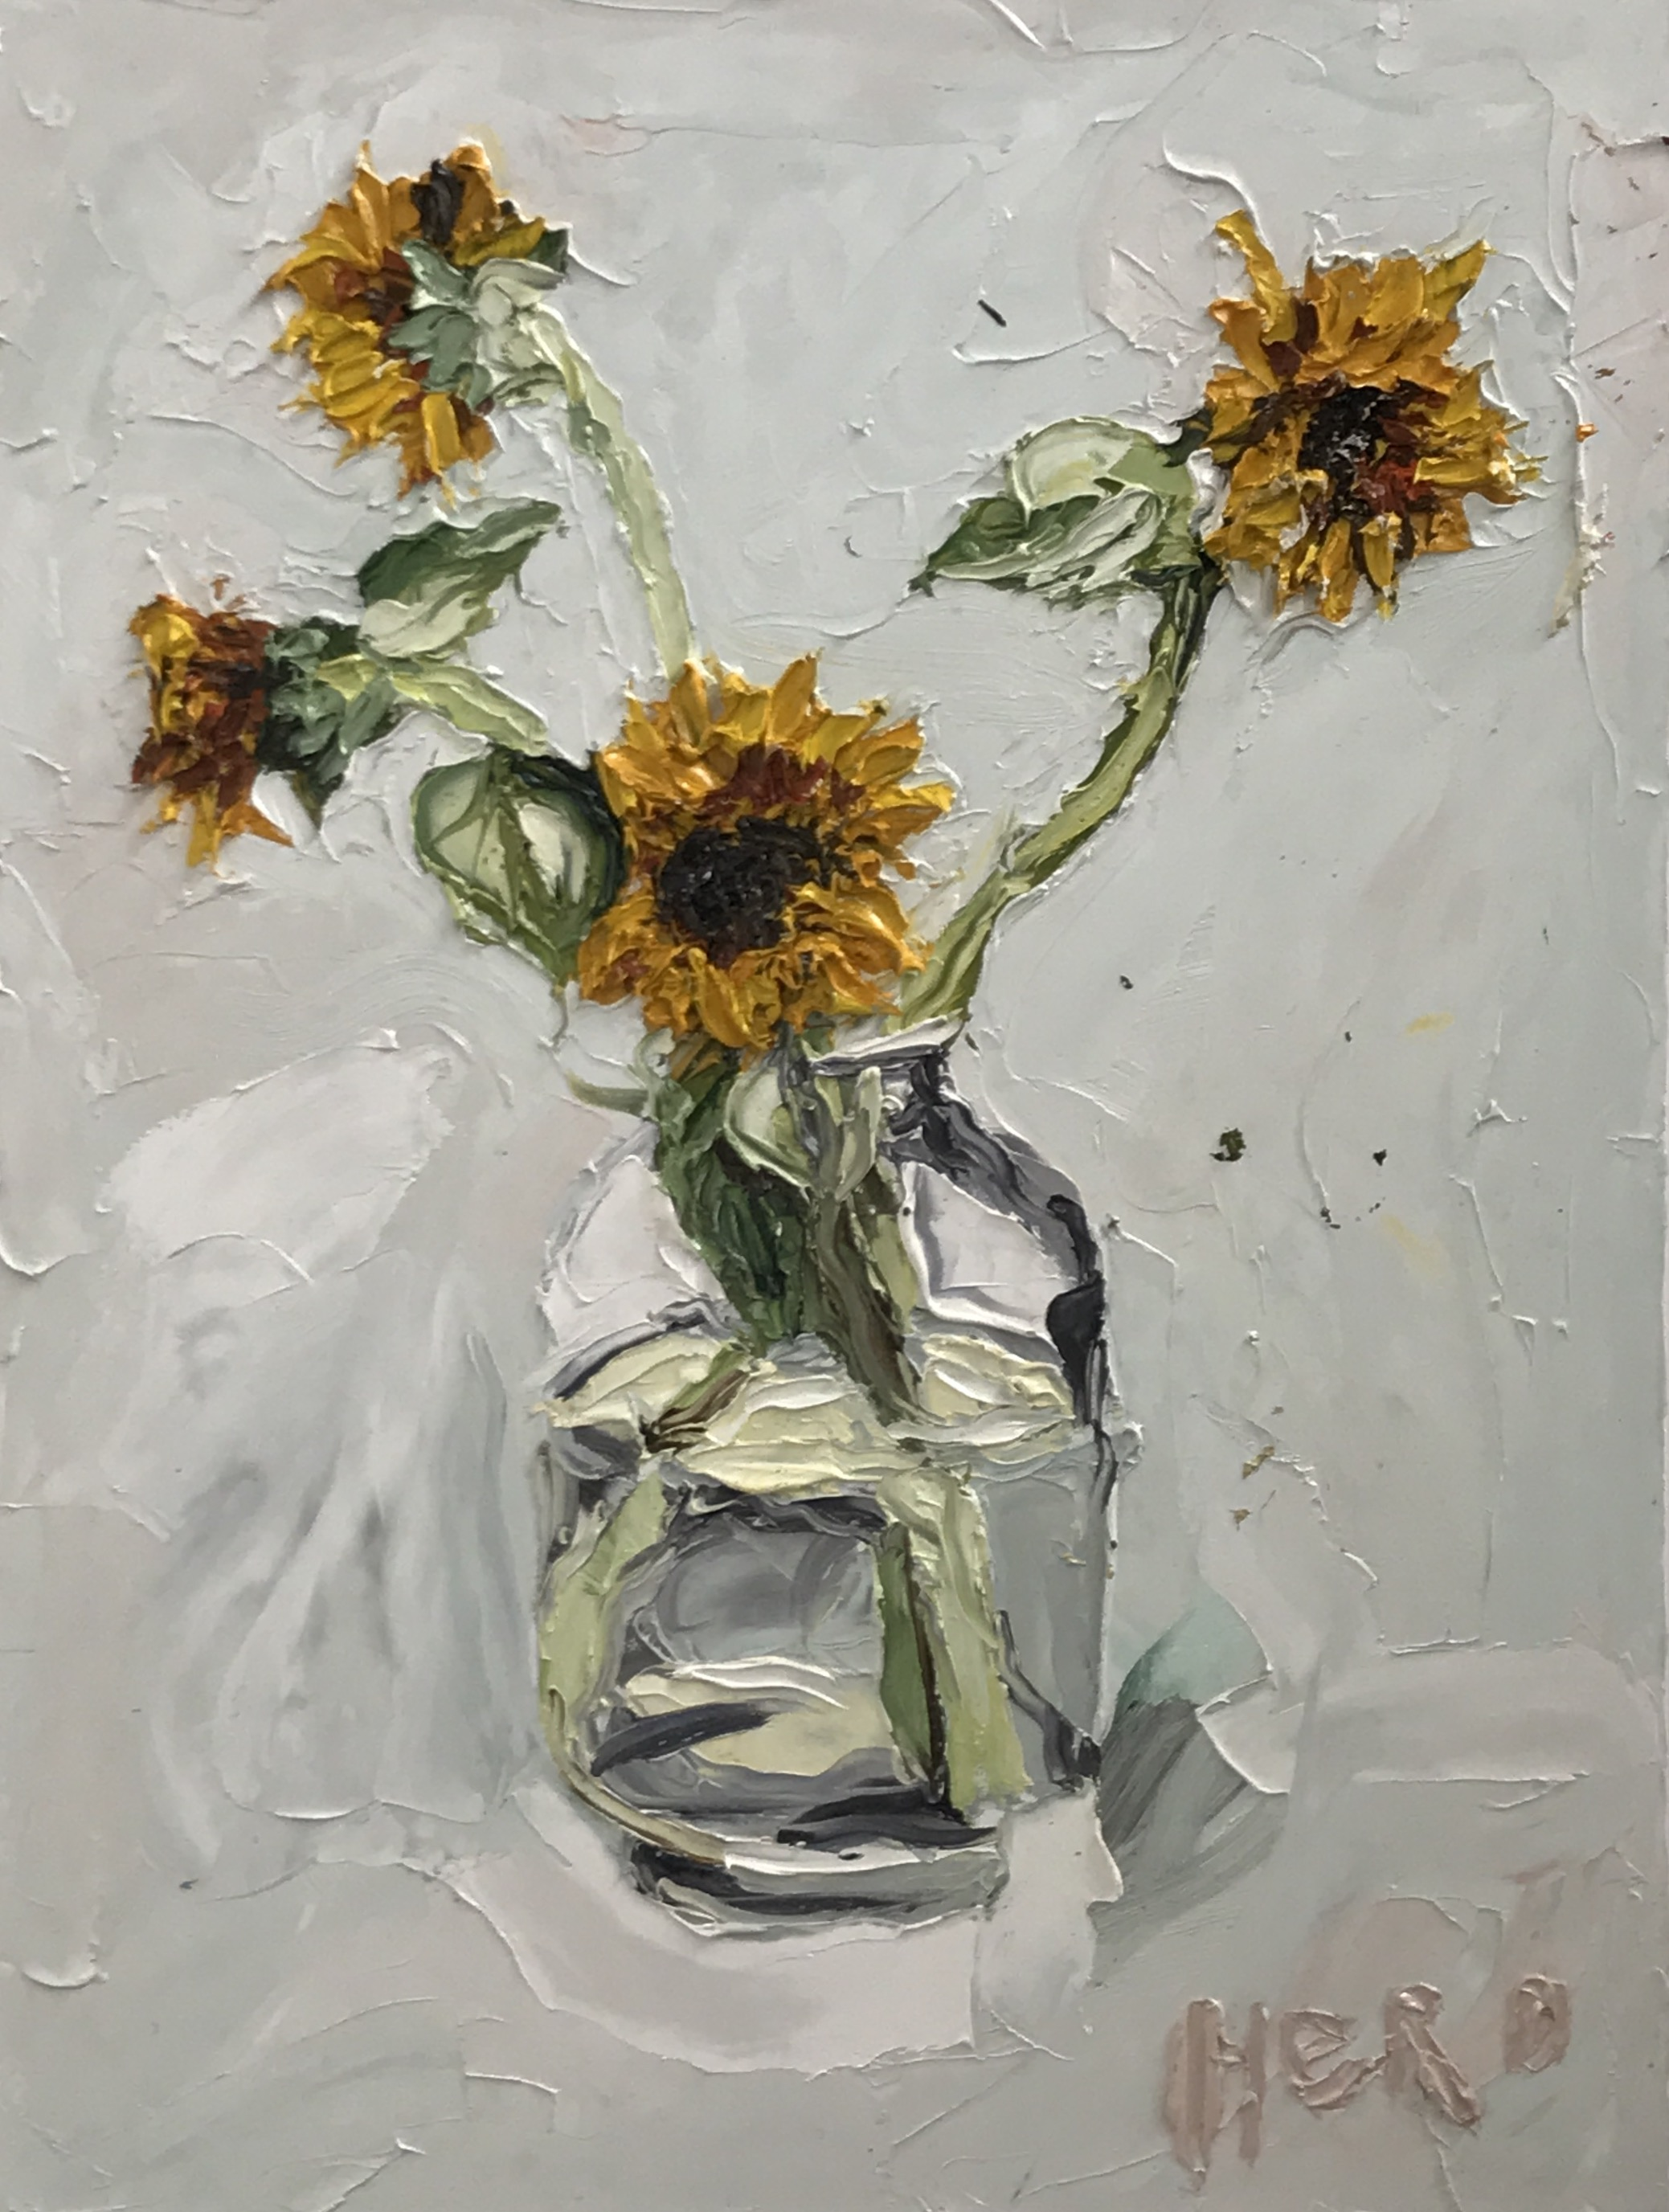 NIck Herd, Sunflowers oil on canvas, 76 x 102 cm, available